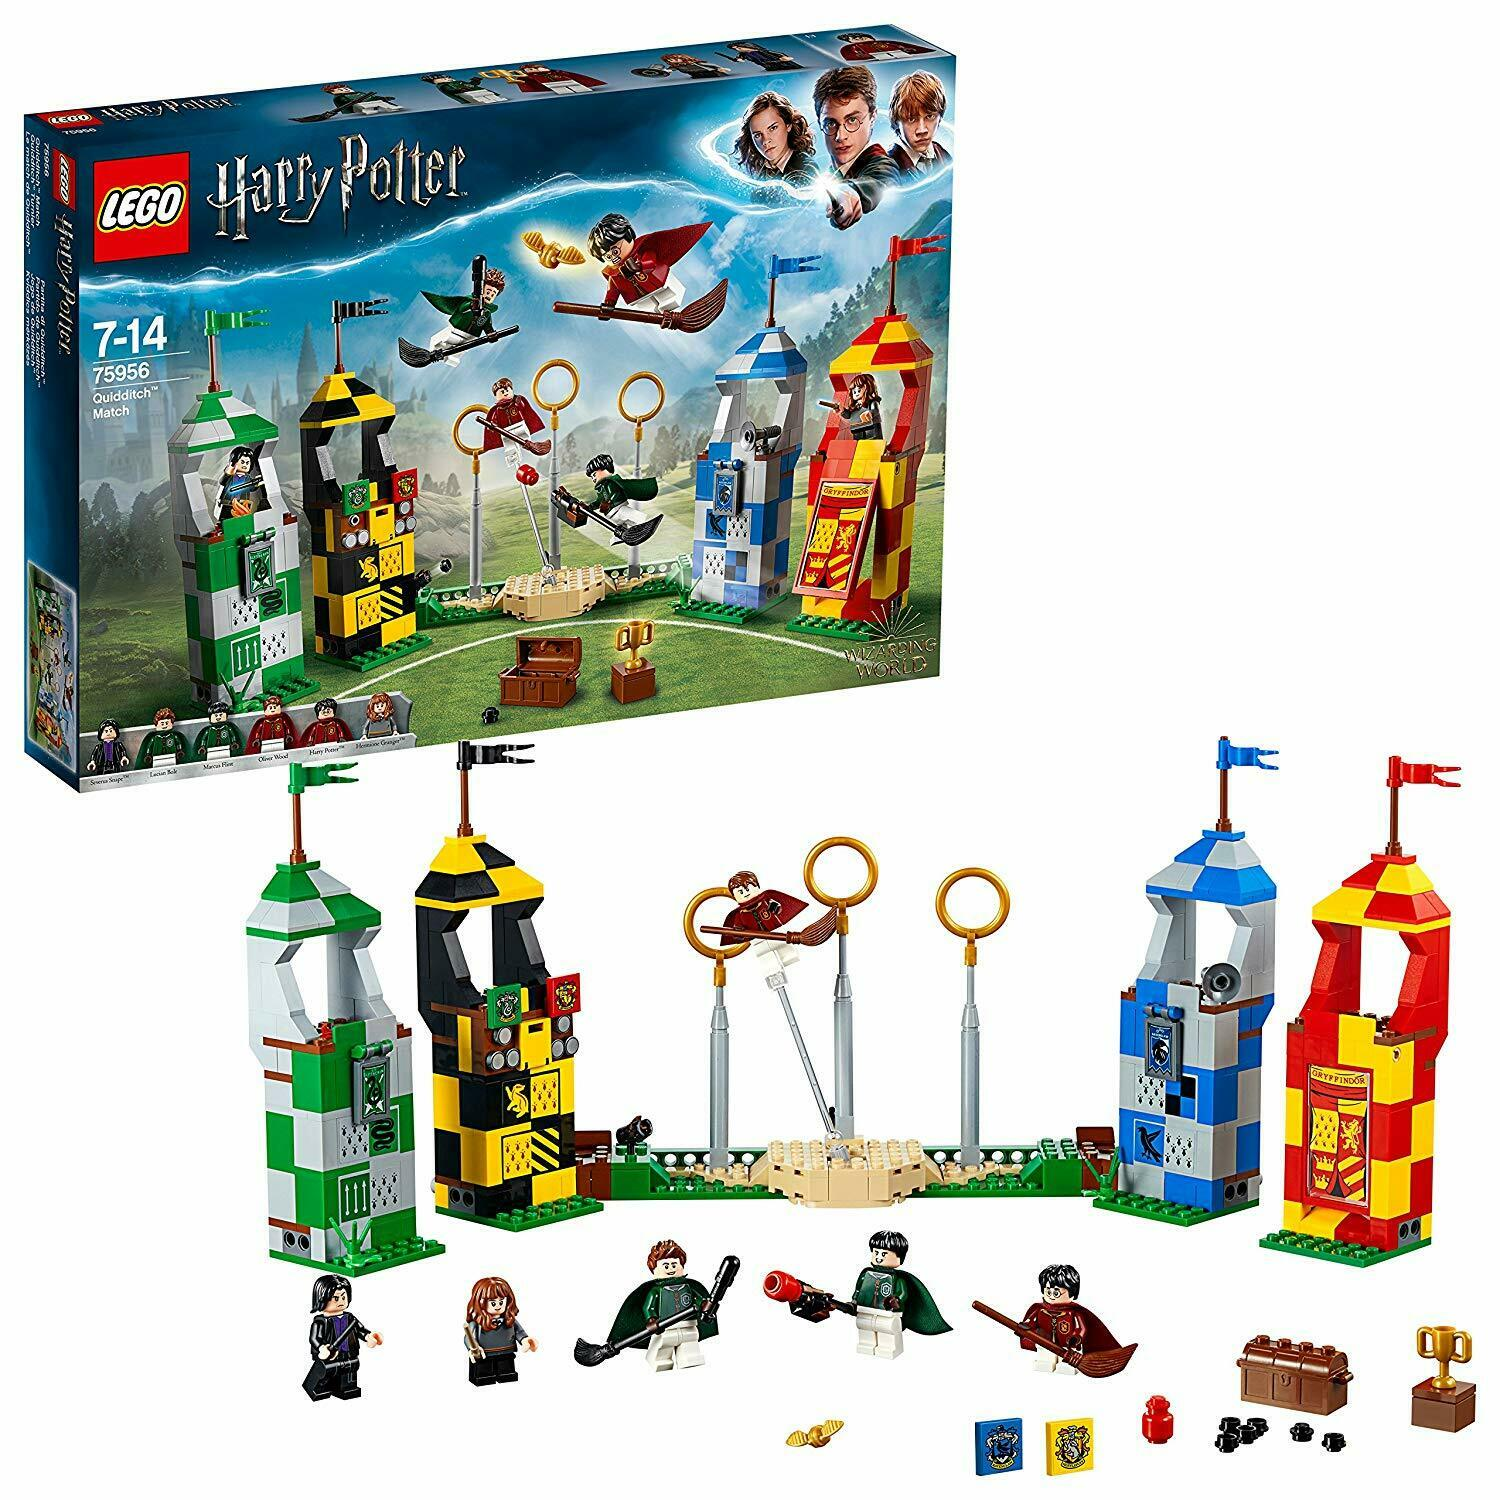 LEGO Harry Potter Quidditch Match Building Construction Set + Minifigures Towers